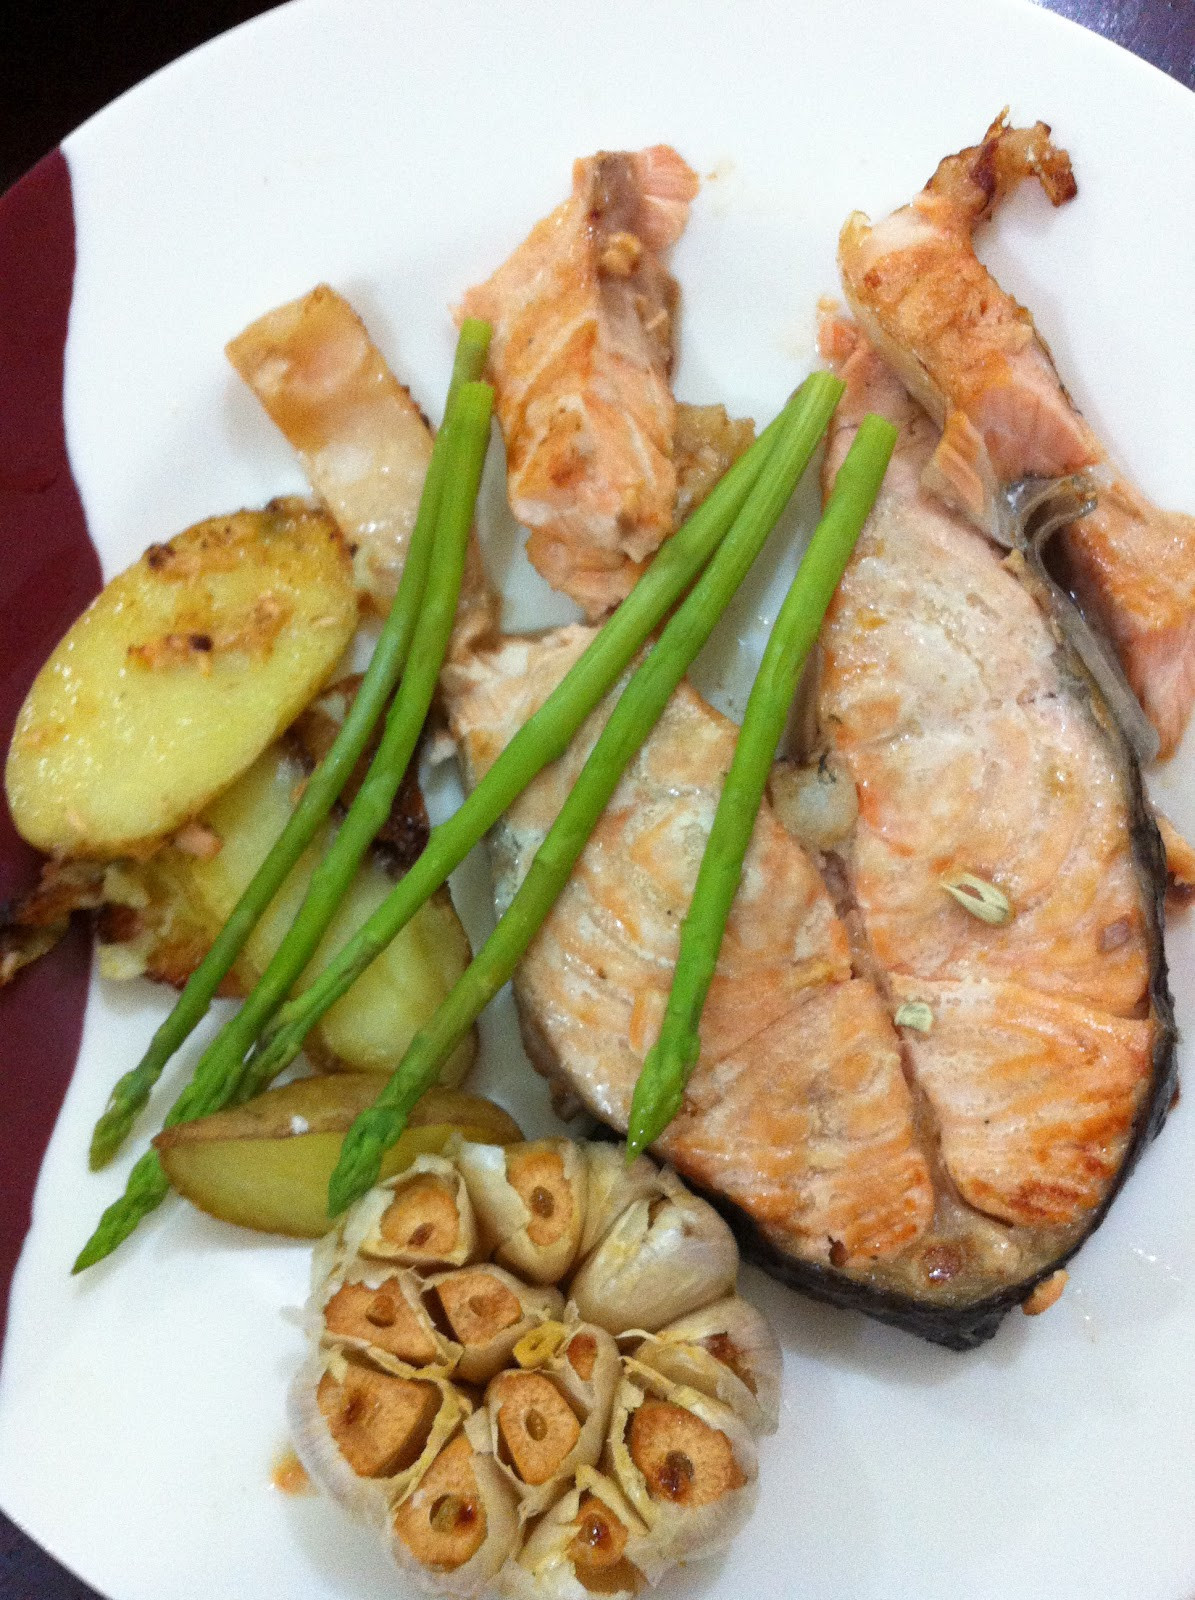 Healthy Salmon Dinner  TURKNOY Turknoy Dishes A Healthy Salmon Dinner